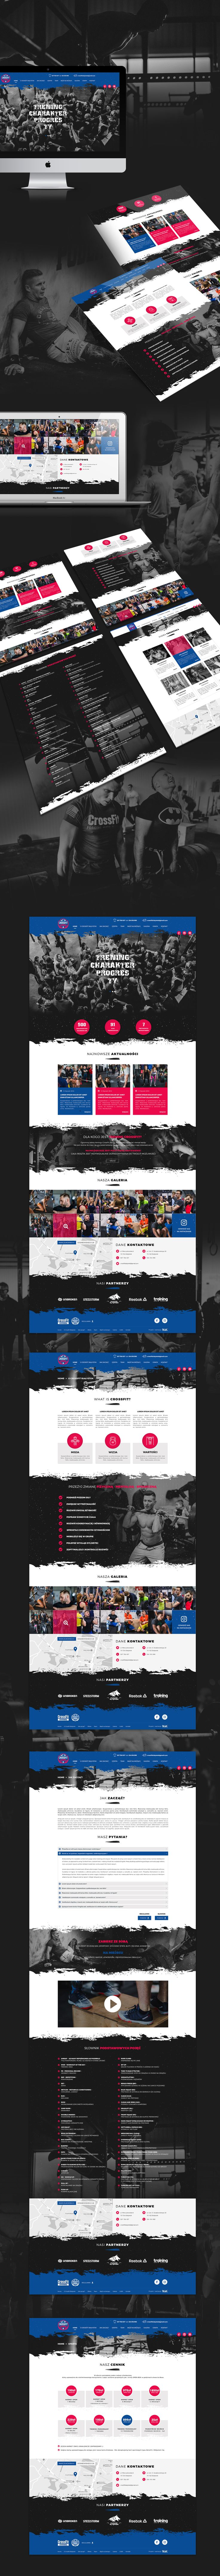 Responsive website for Crossfit, check out more projects http://wiwiagency.com/portfolio/